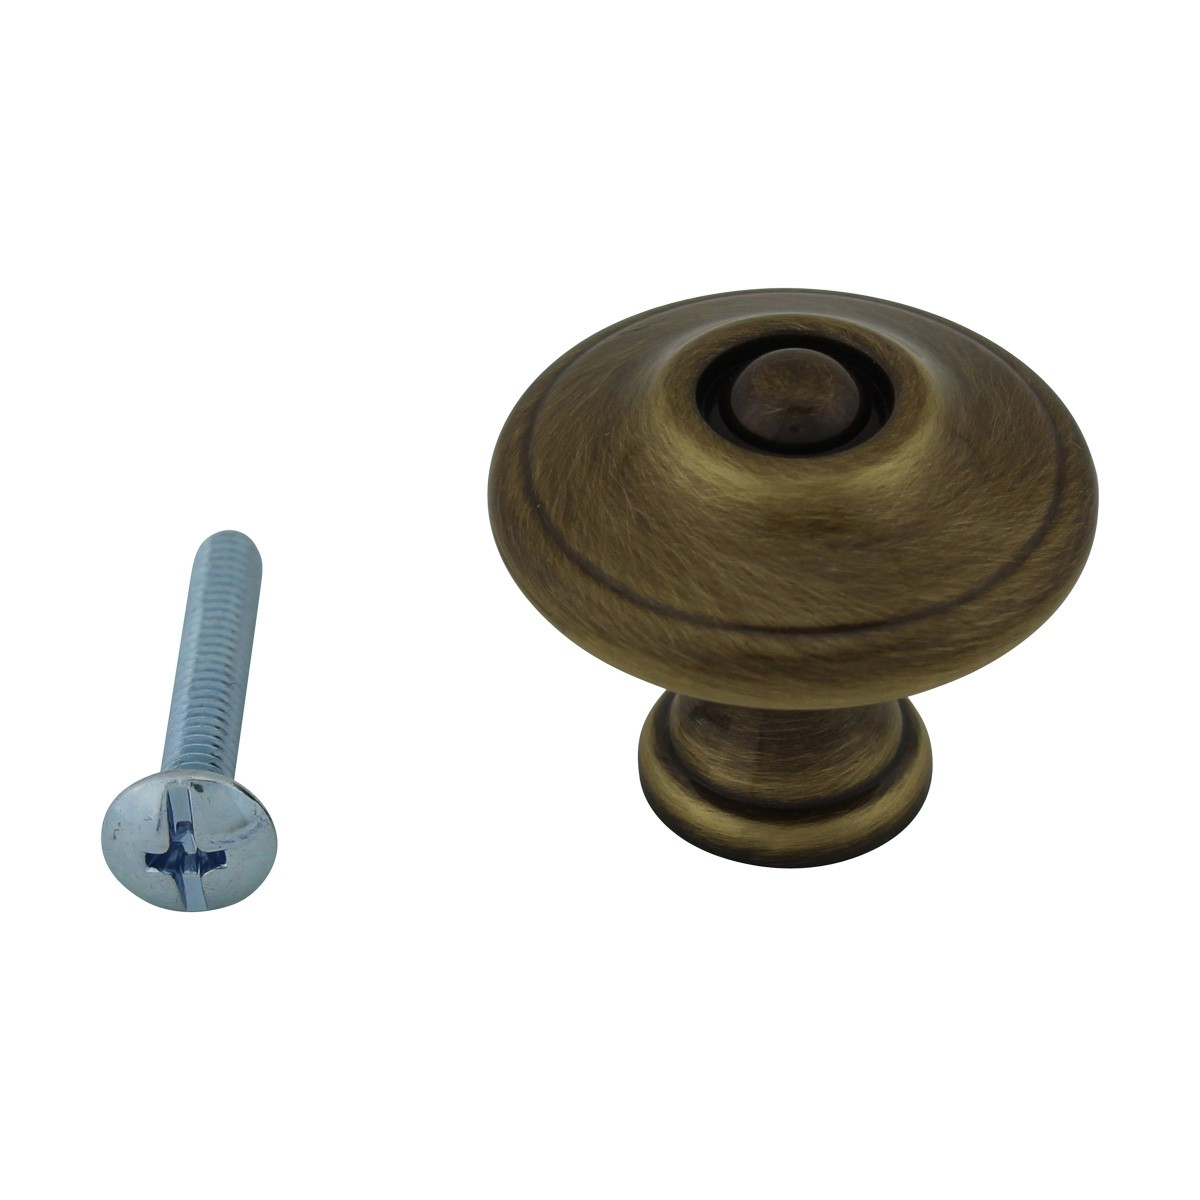 Antique brass cabinet knobs 28 images rosewood antique for Antique knobs for kitchen cabinets